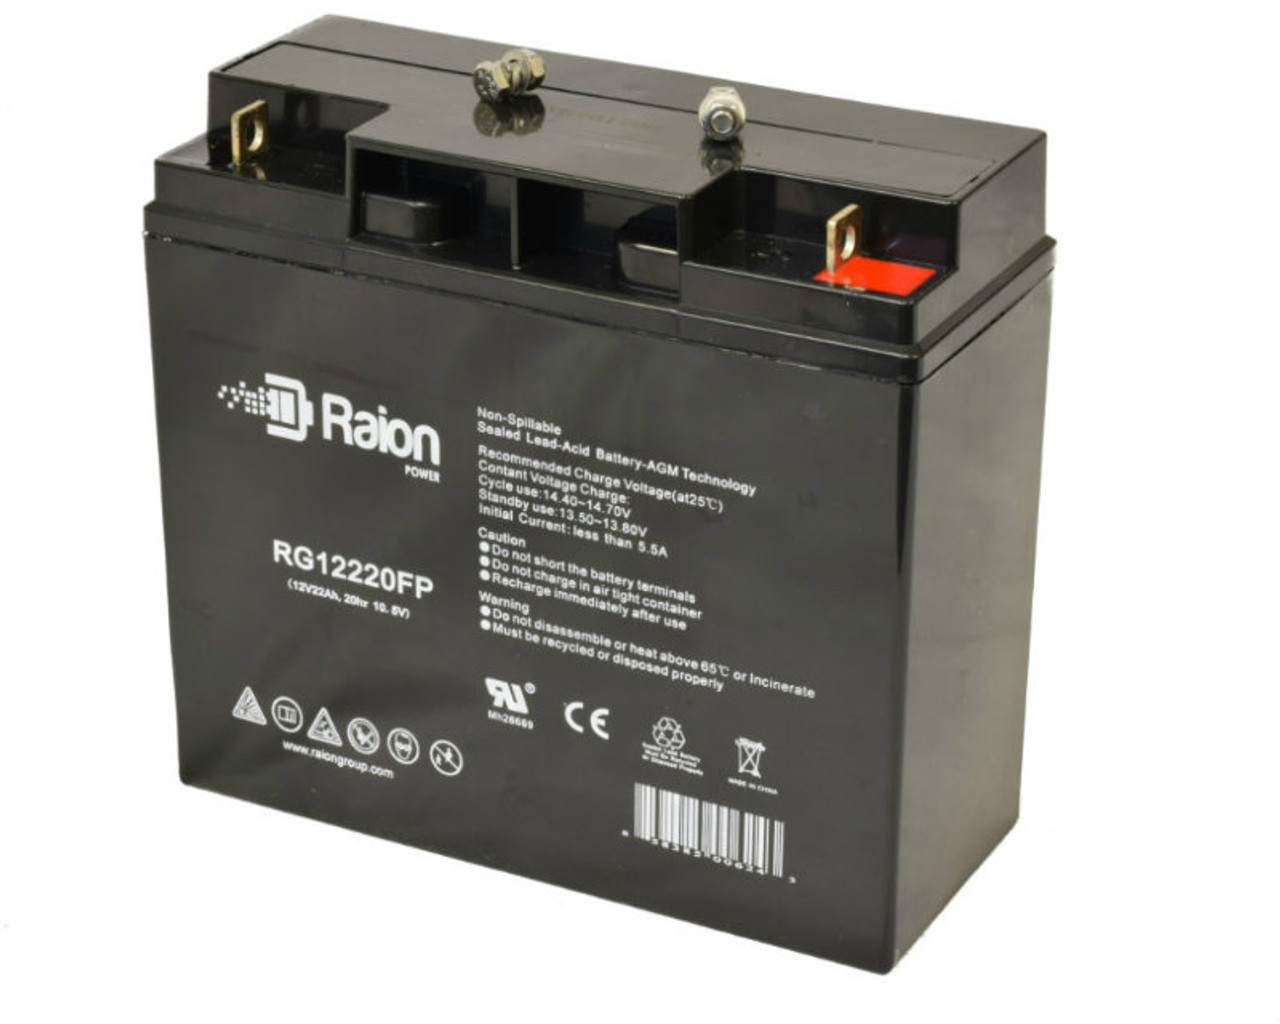 Raion Power RG12220FP Replacement Wheelchair Battery For Electric Mobility Rascal 120 Little Rascal (1 Pack)